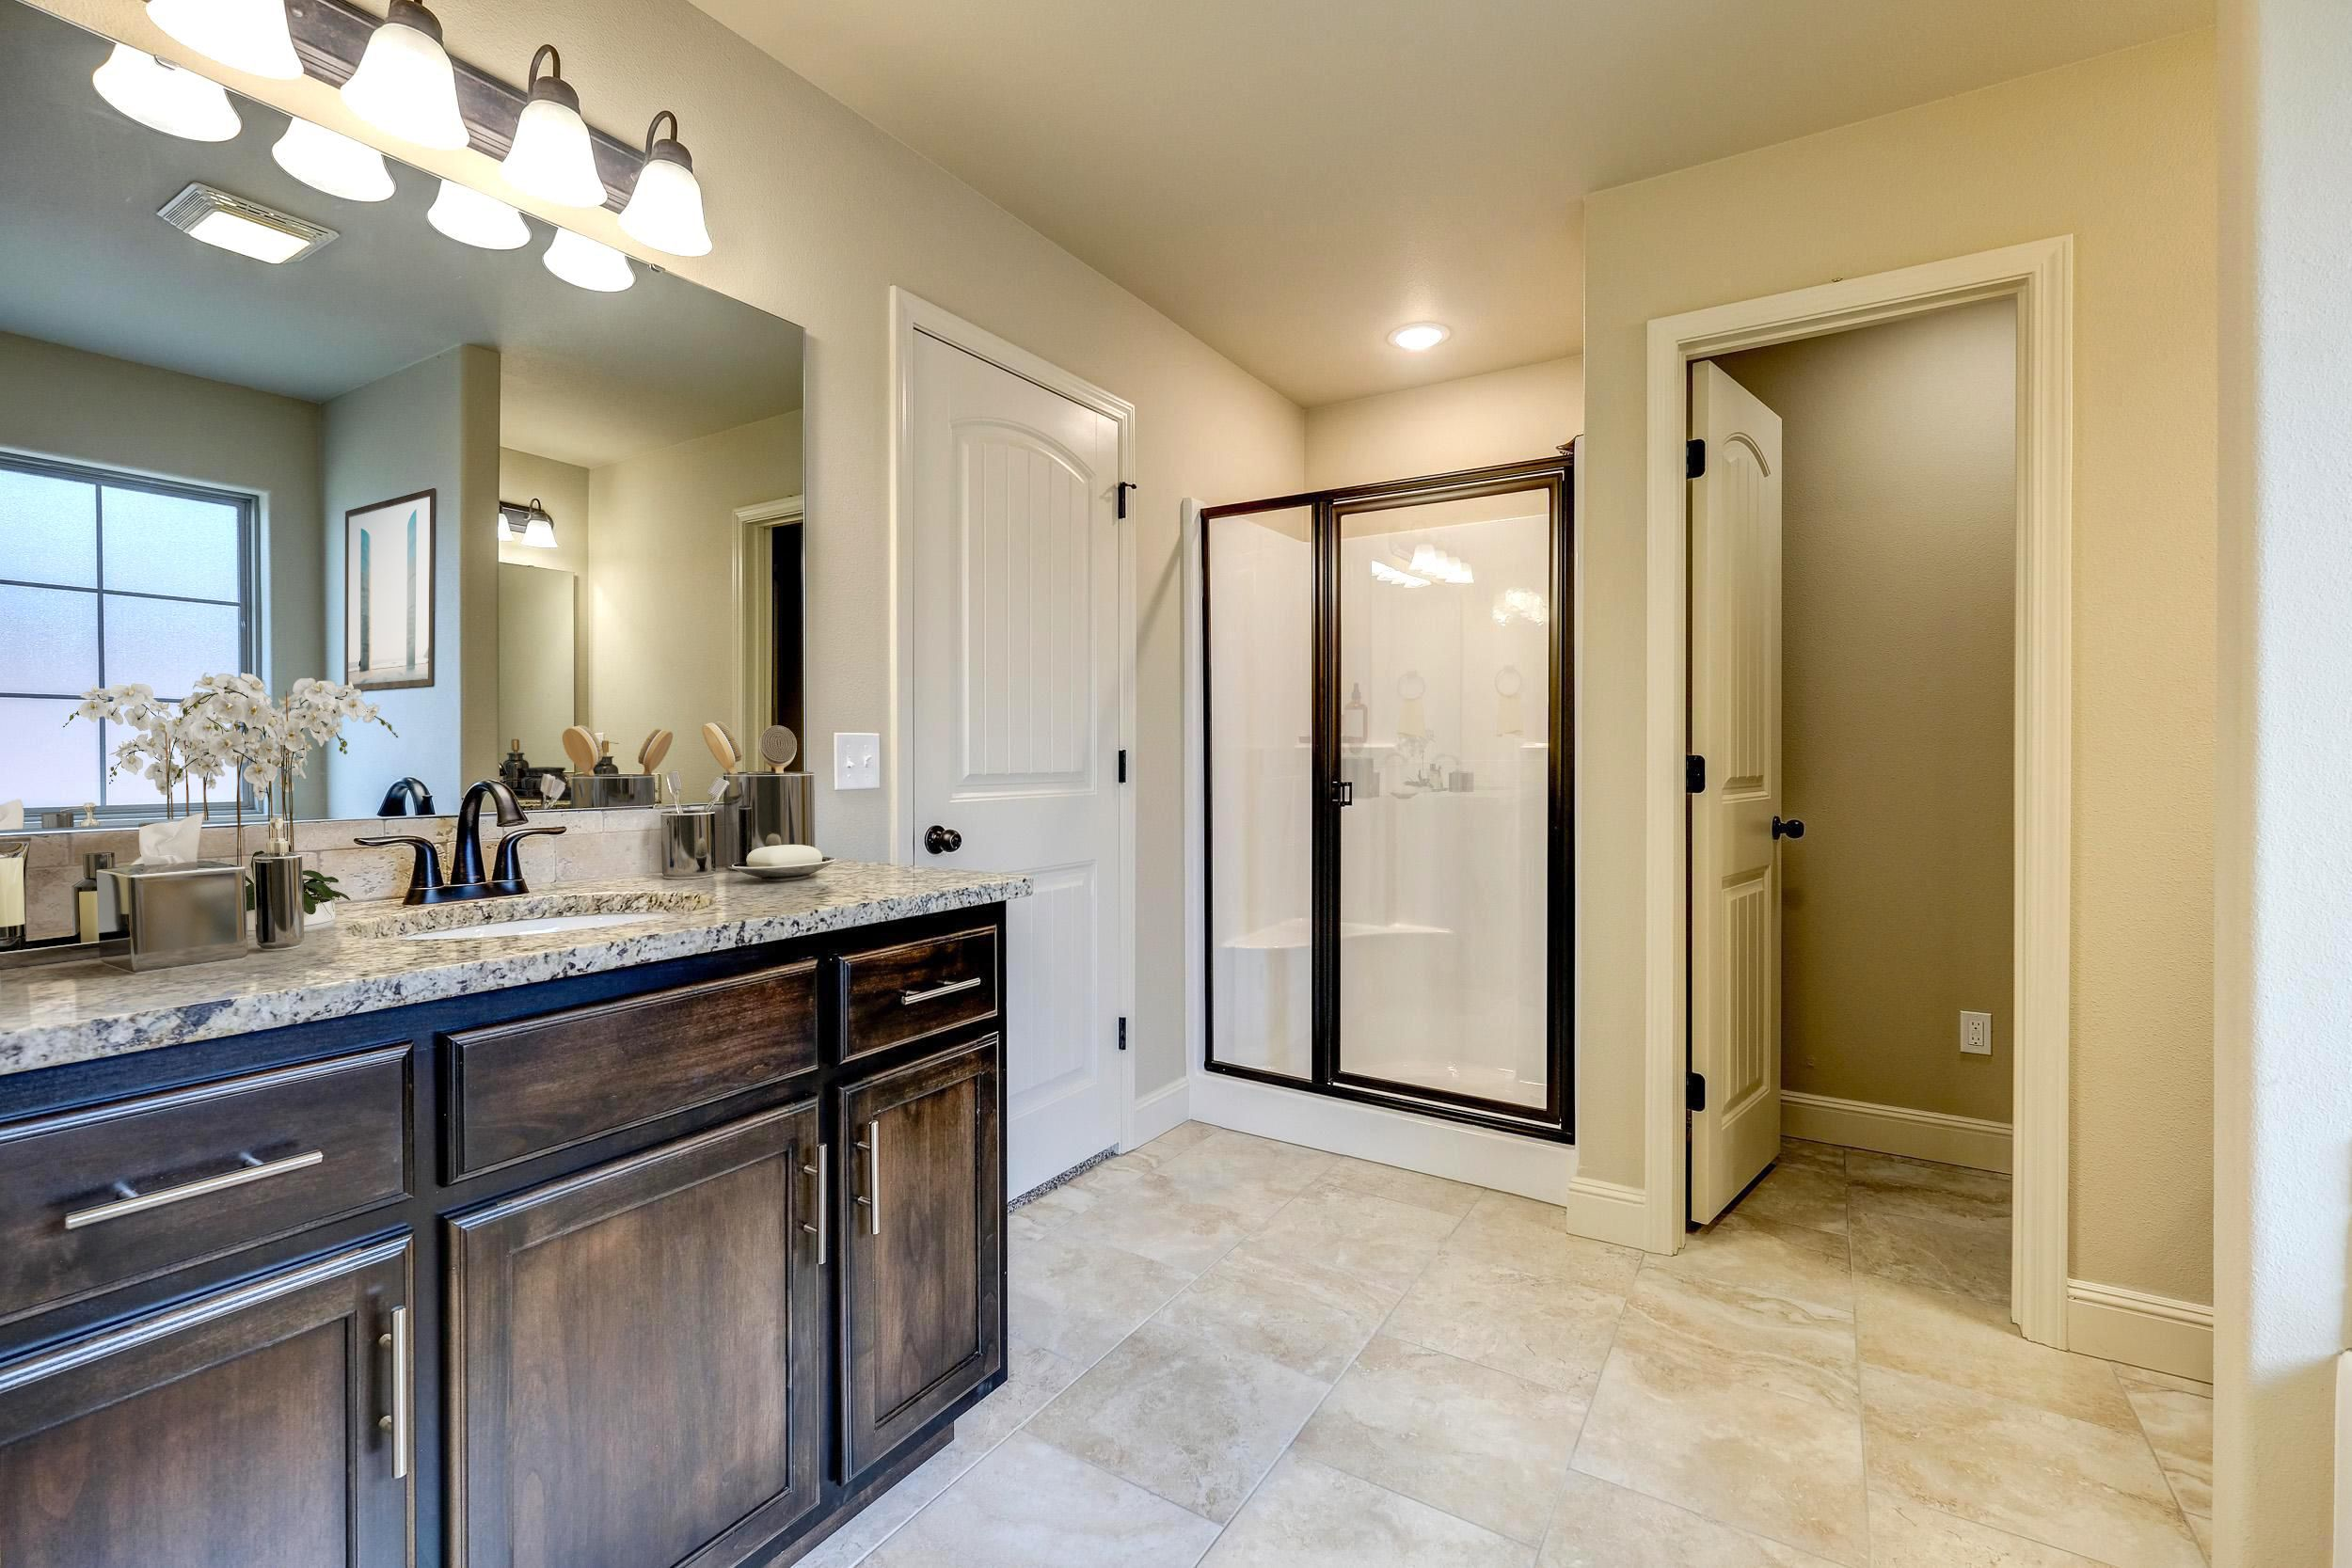 Bathroom featured in the 1650KI Series By Schuber Mitchell Homes in Fayetteville, AR